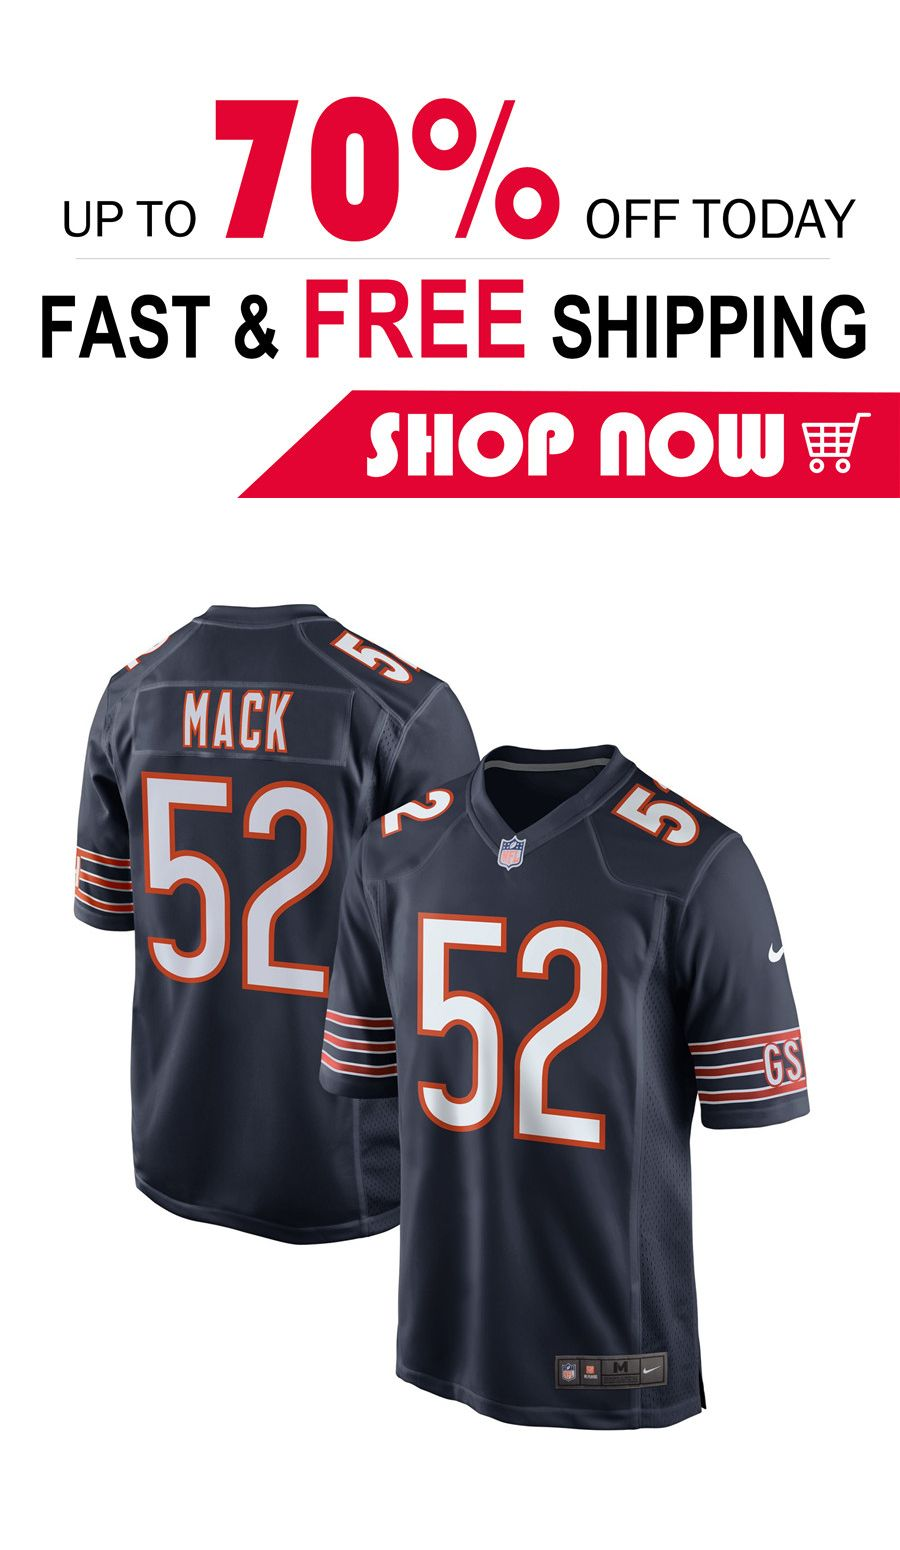 timeless design 0aff9 0a459 men's Chicago Bears custom football Game jersey in 2019 ...